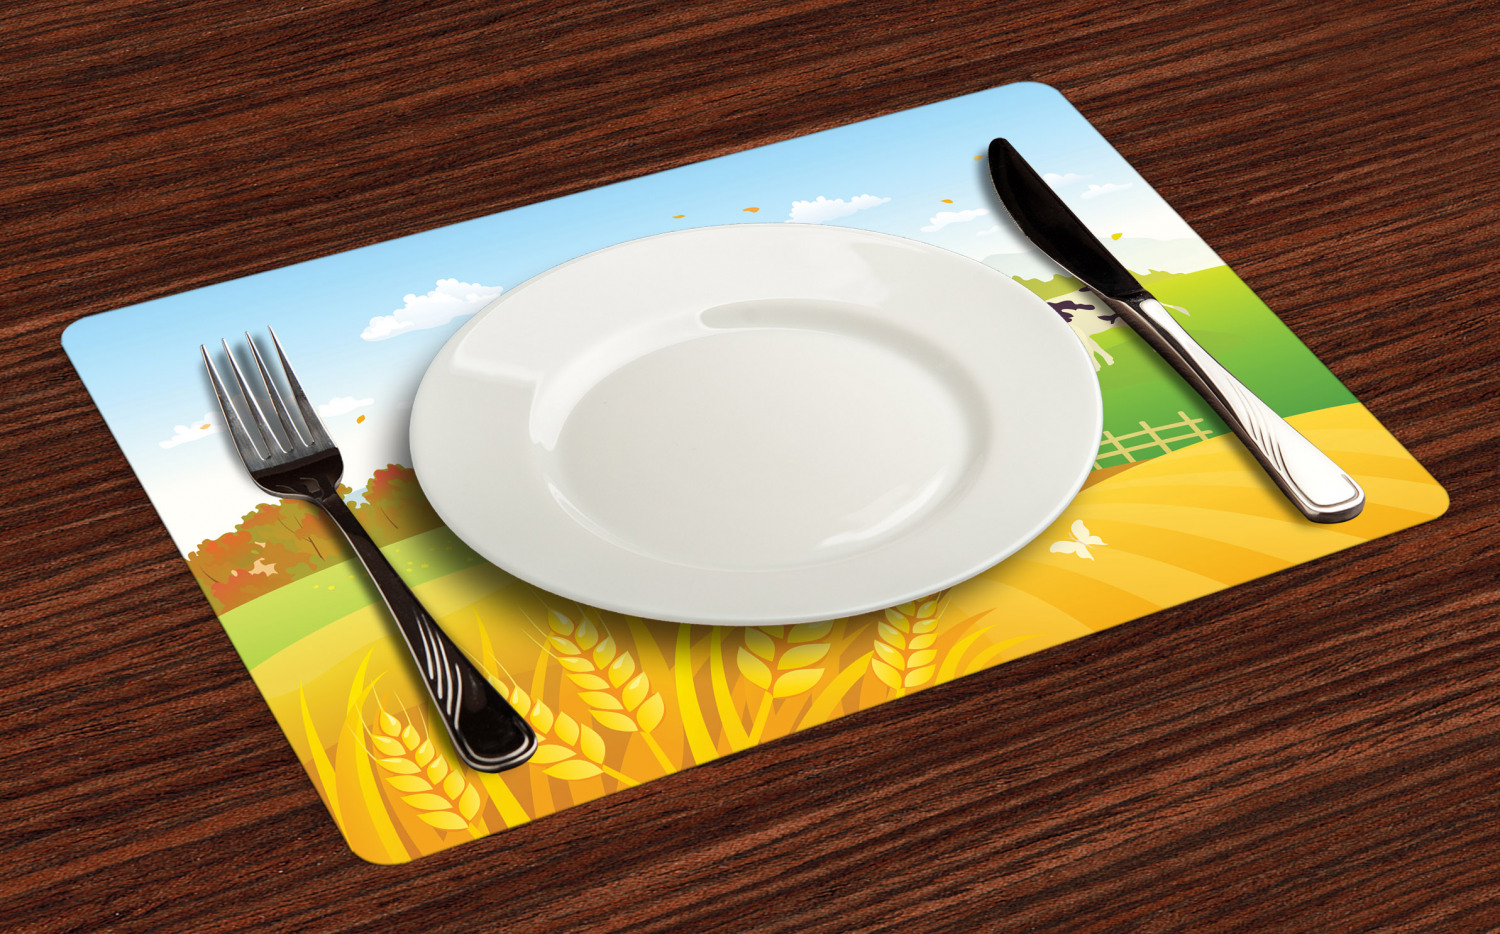 Ambesonne-Fabric-Place-Mats-Set-of-4-Placemats-for-Dining-Room-and-Kitchen-Table thumbnail 45